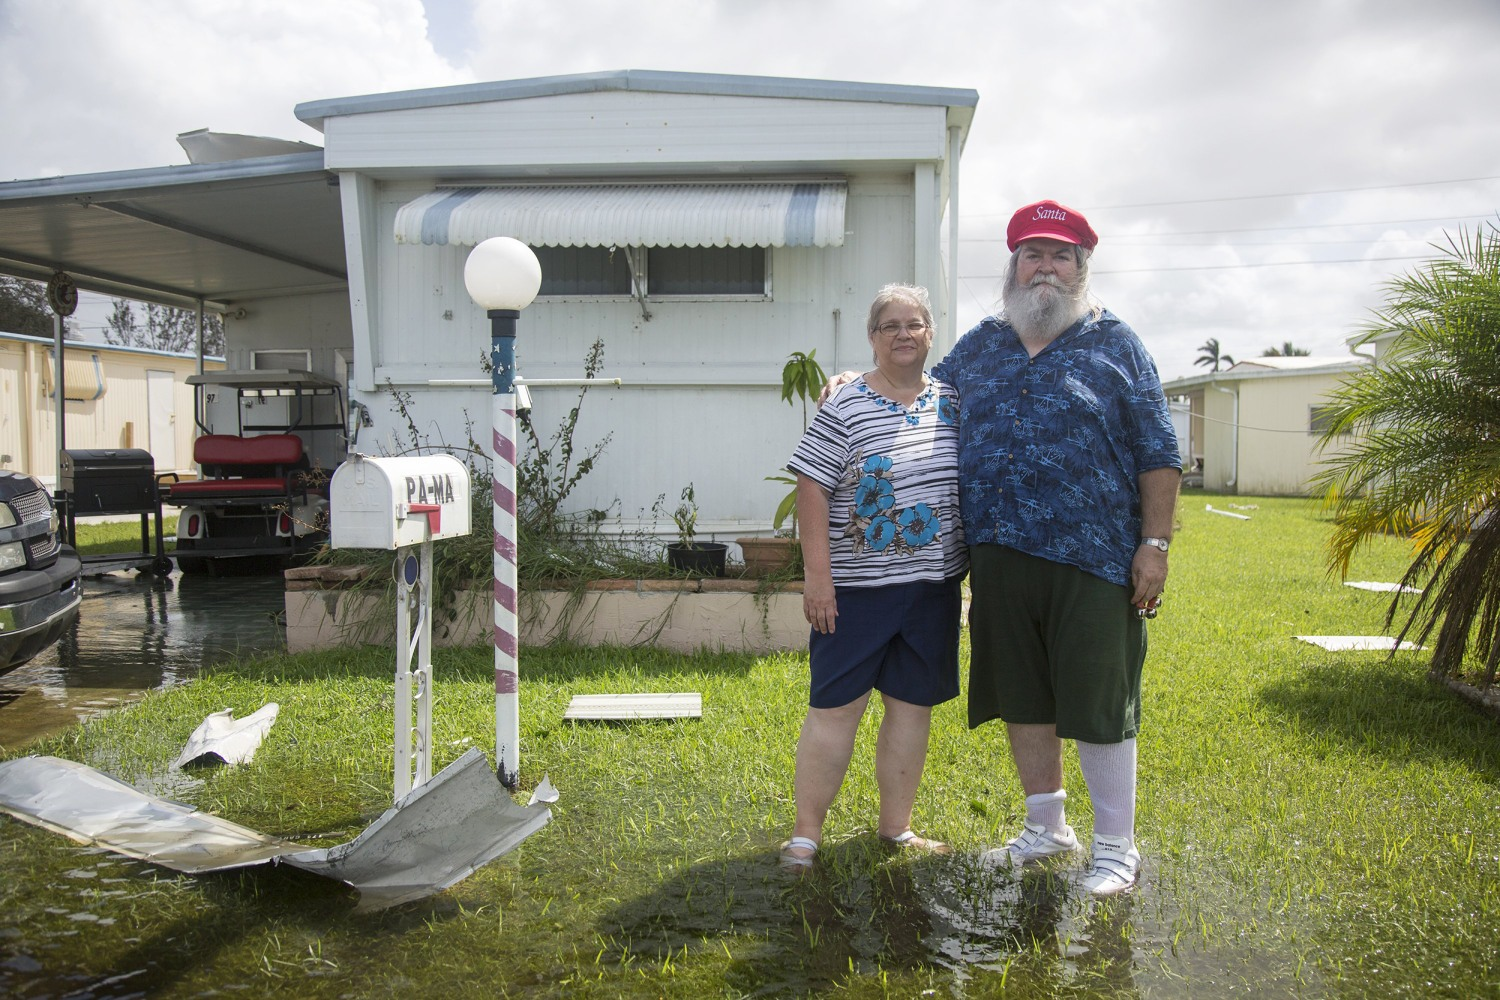 Image Marcia And Paul Ashby In Holiday Manor Naples Florida After Hurricane Irma